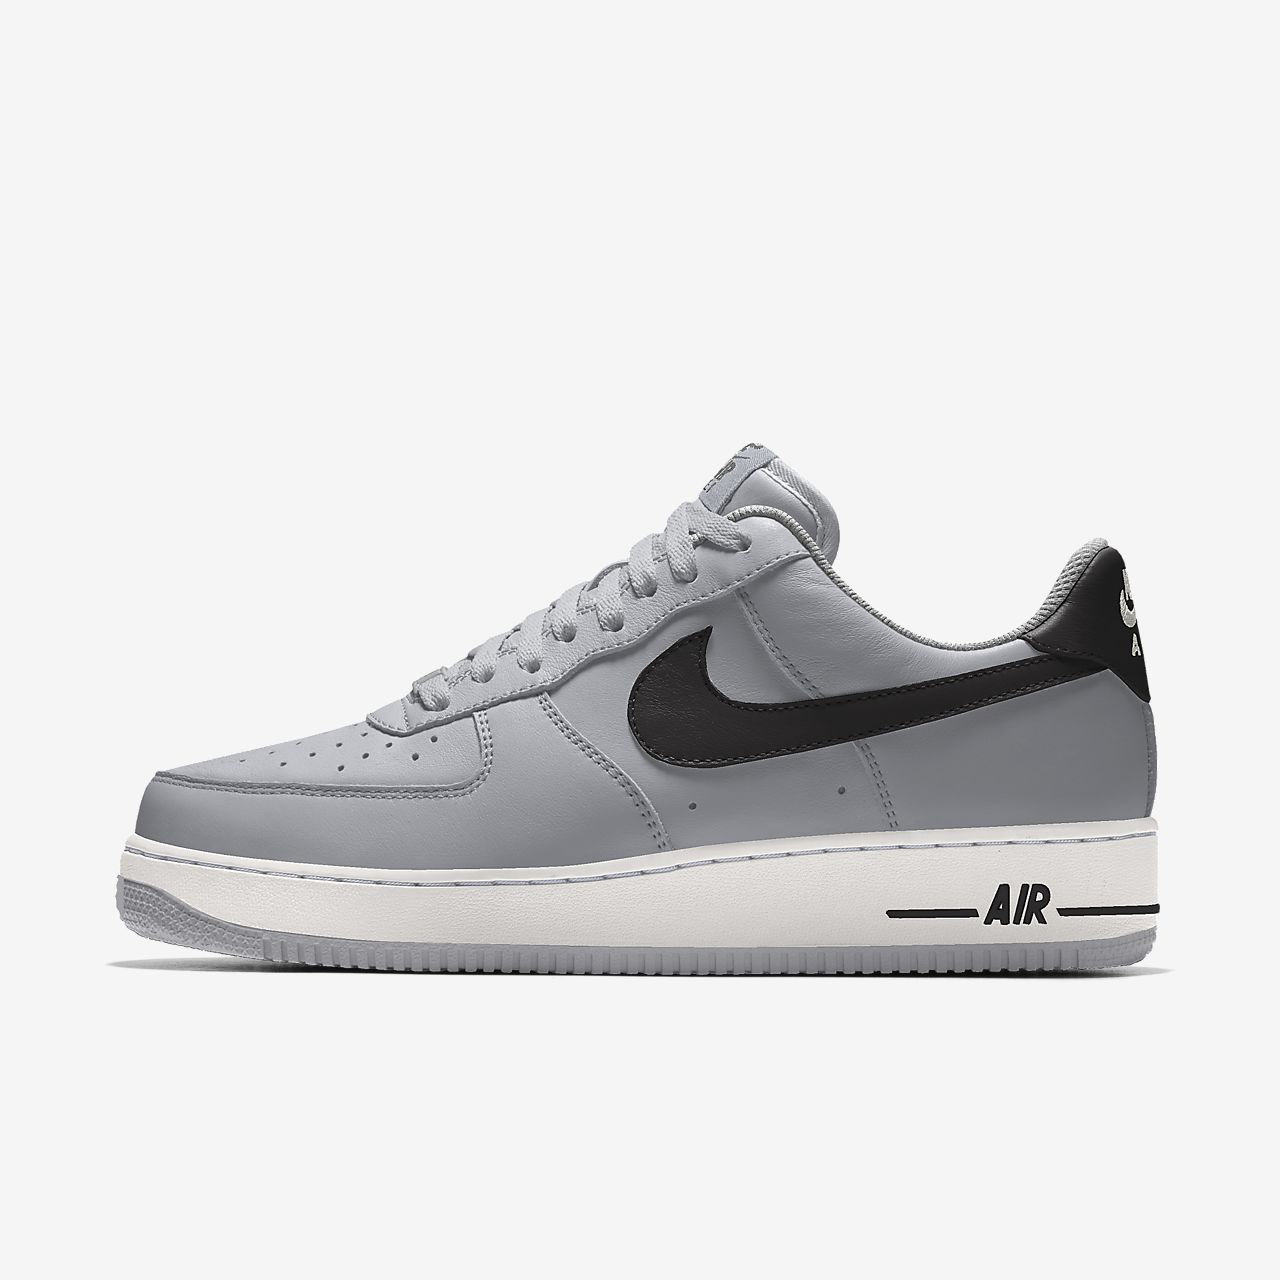 Damskie personalizowane buty Nike Air Force 1 Low By You